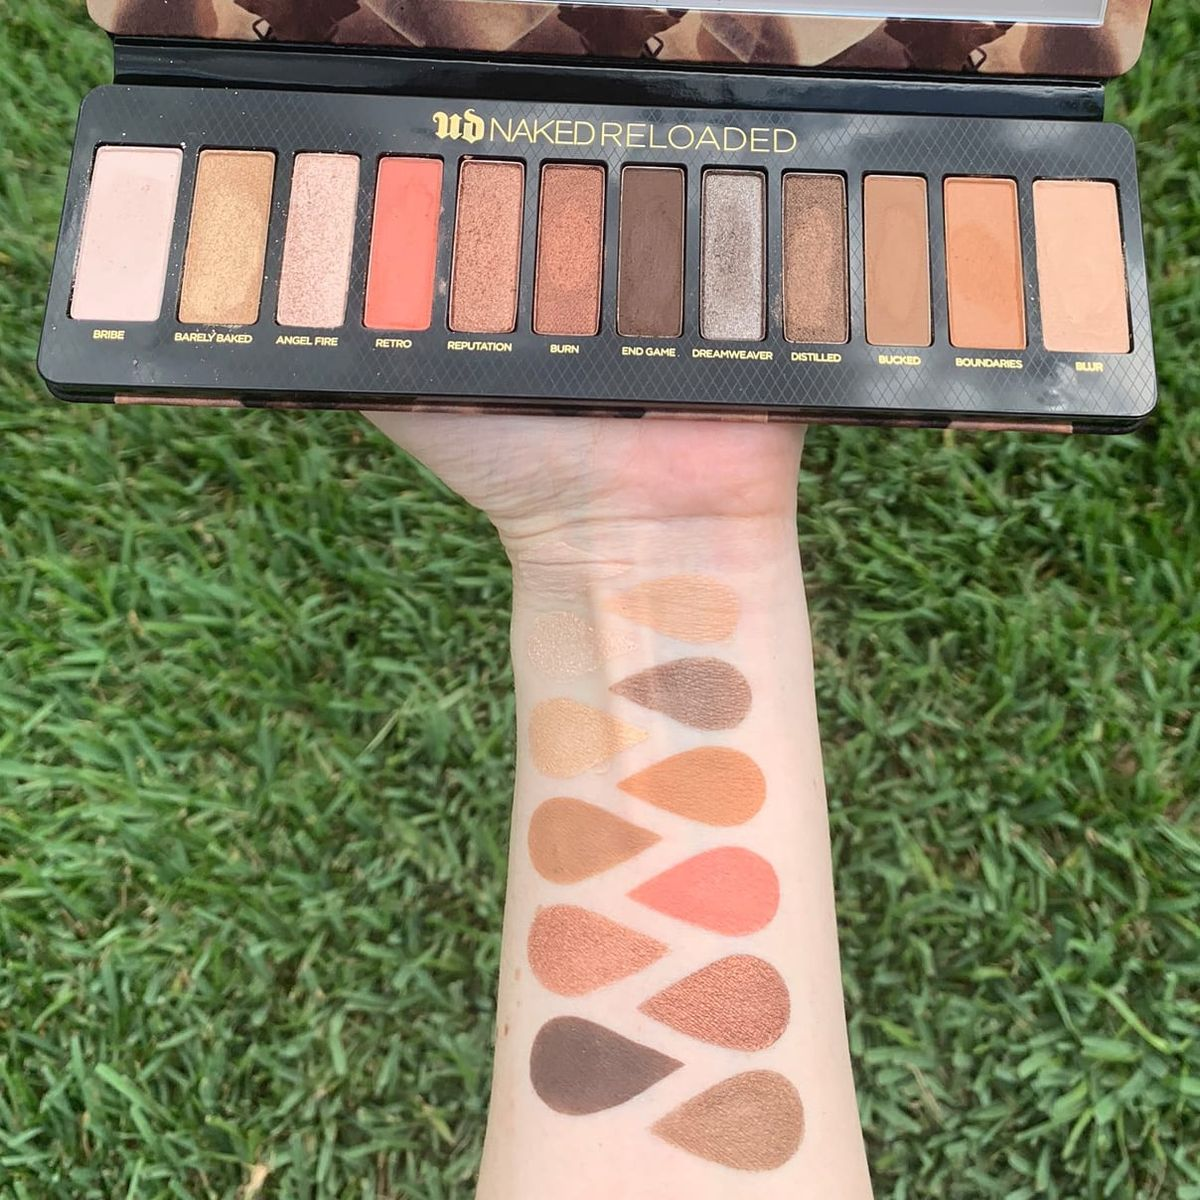 Urban Decay Naked Reloaded Palette Swatched on Pale Skin